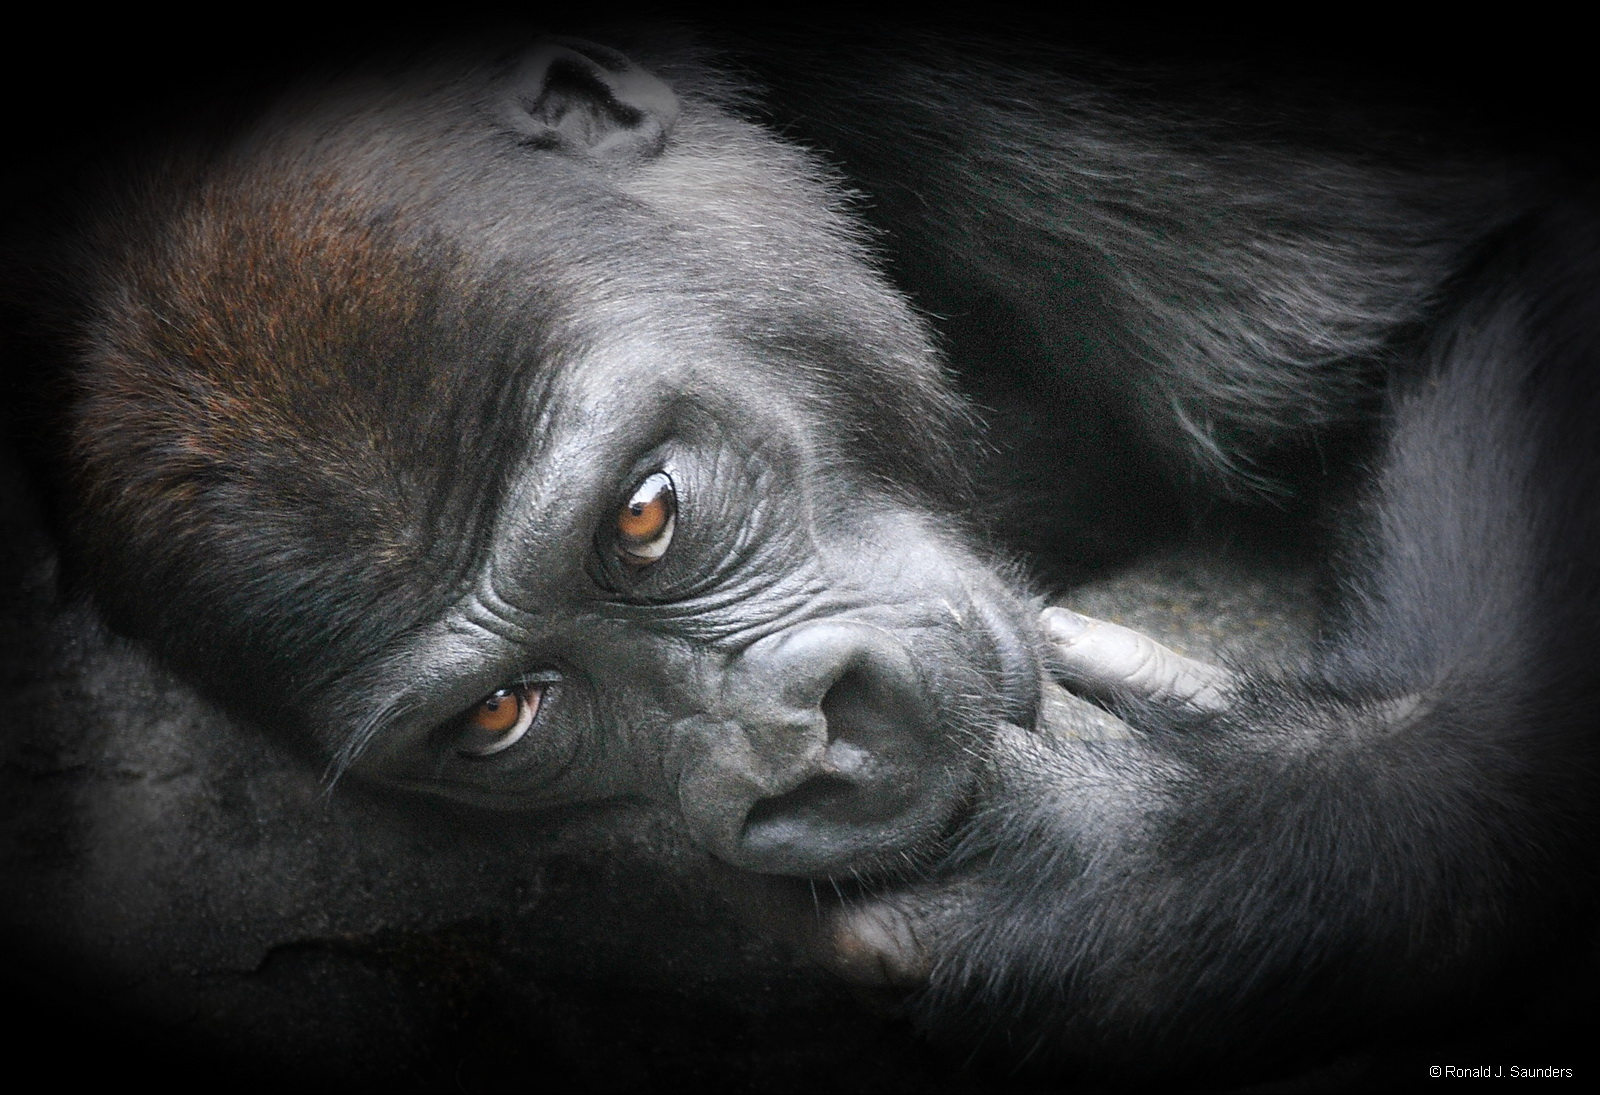 gorilla, animal, ronald, saunders, ron, zoo, color, CPA, CPA 2014, best, photo